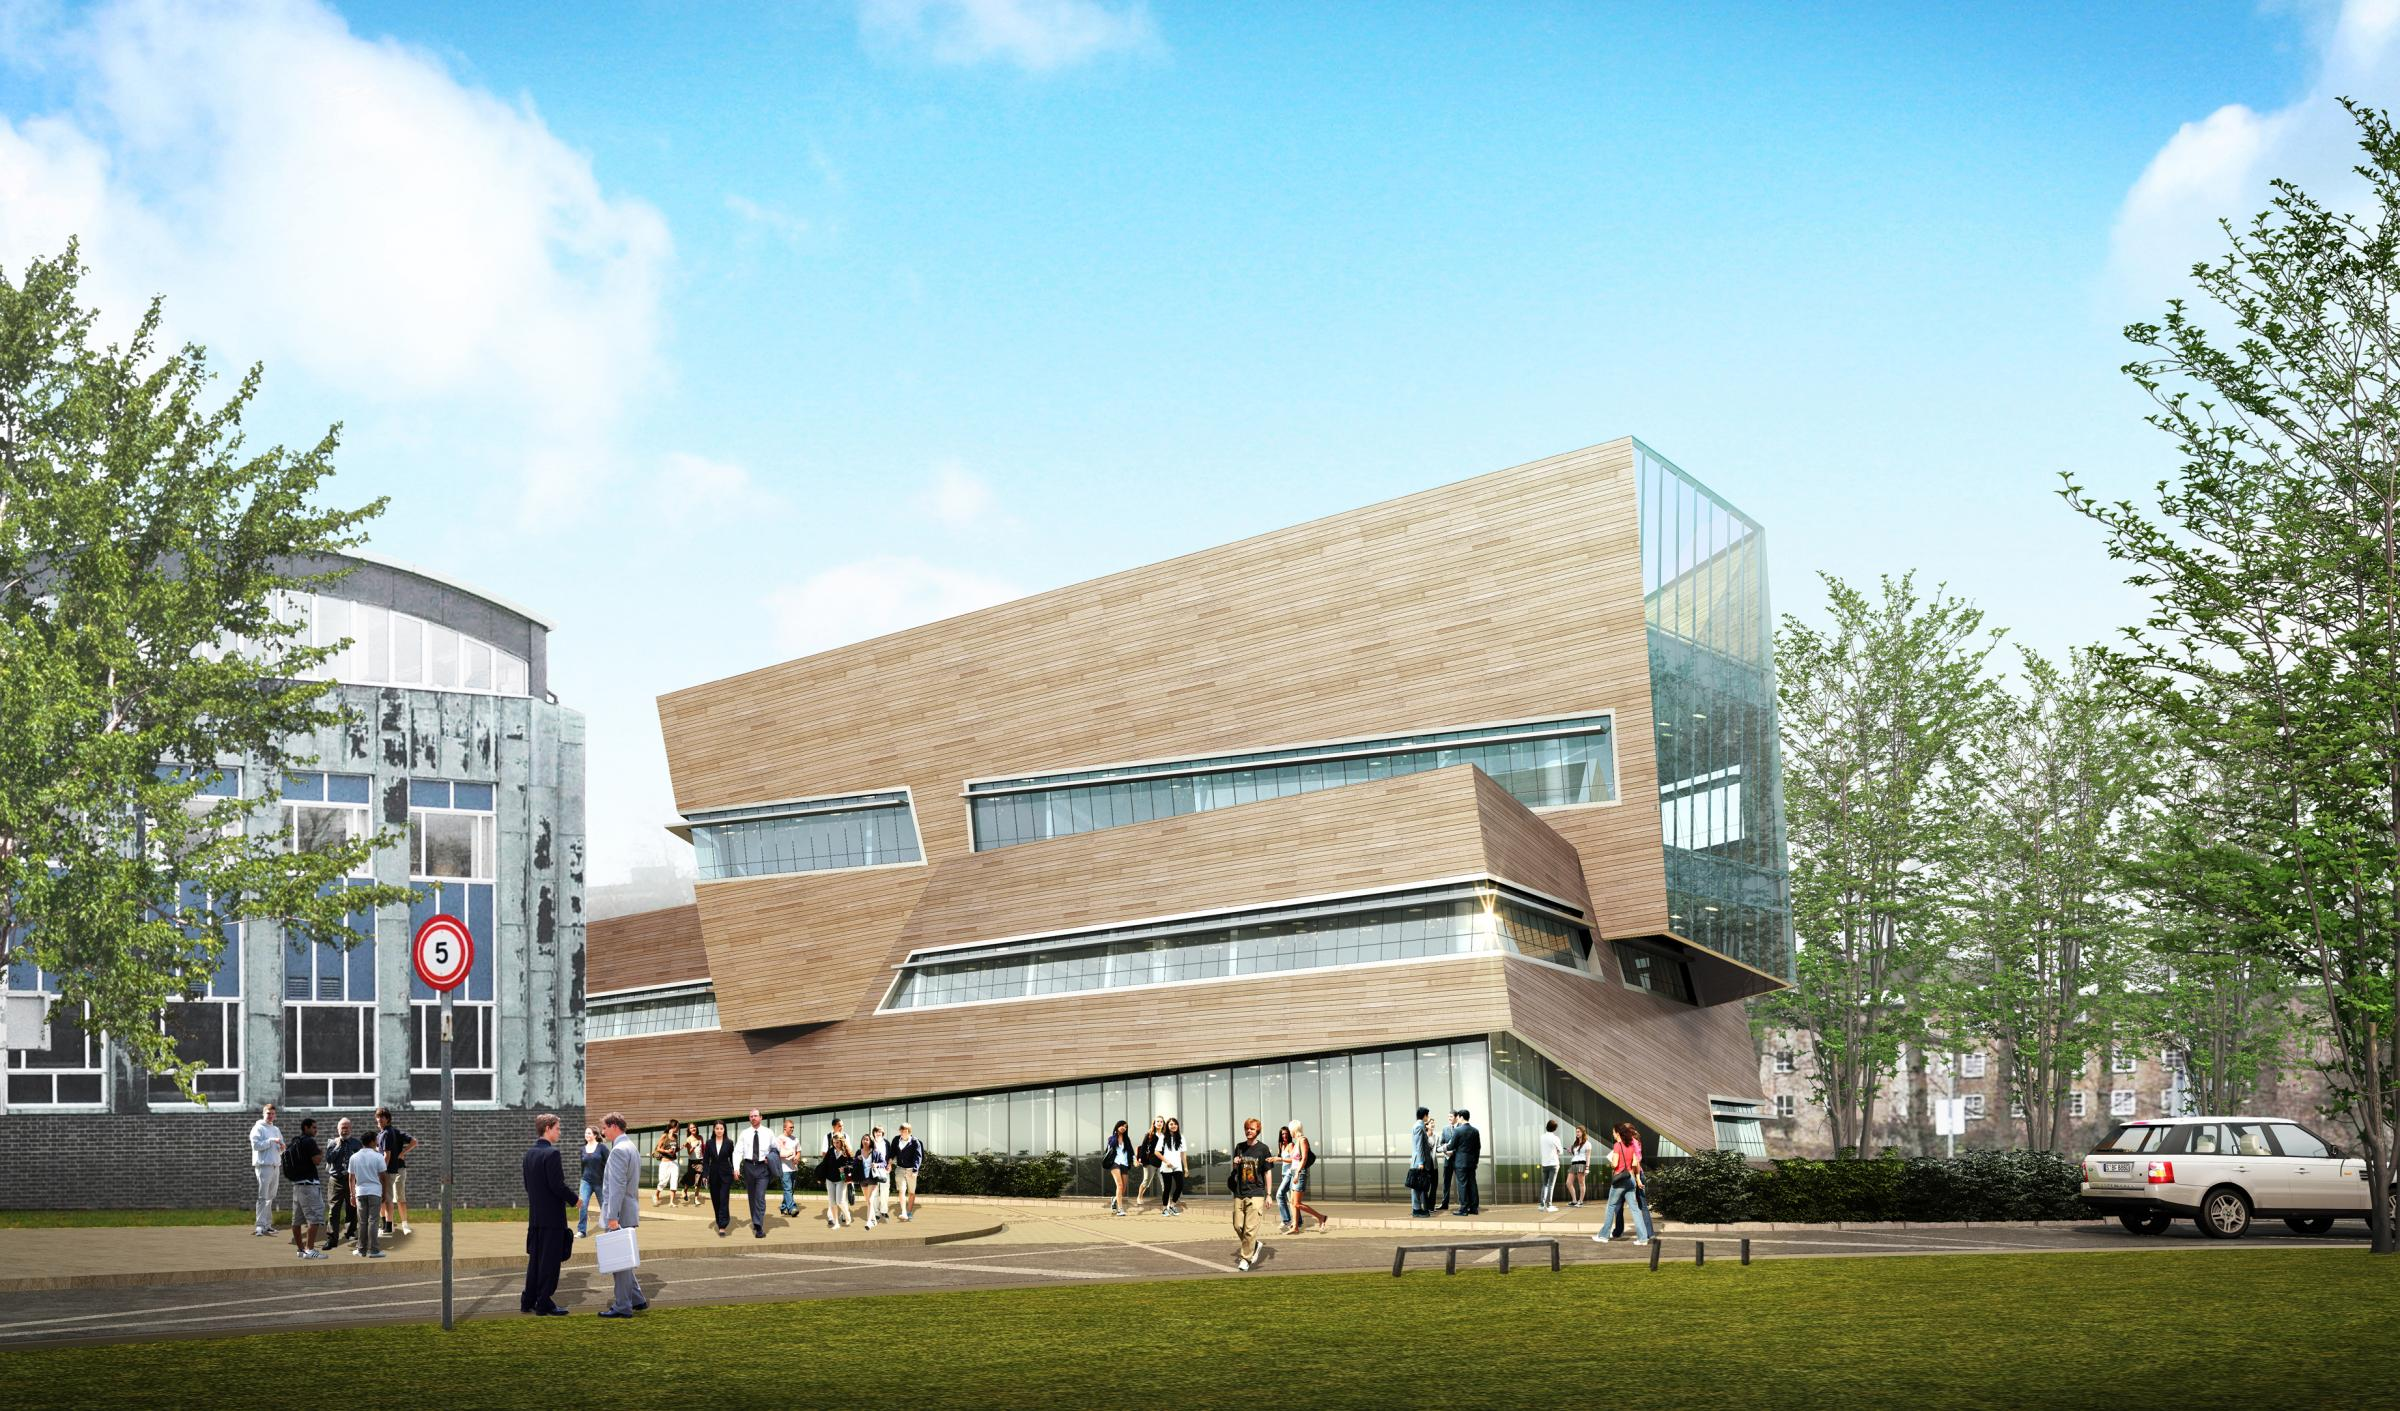 An artist's impression of the new Ogden Centre